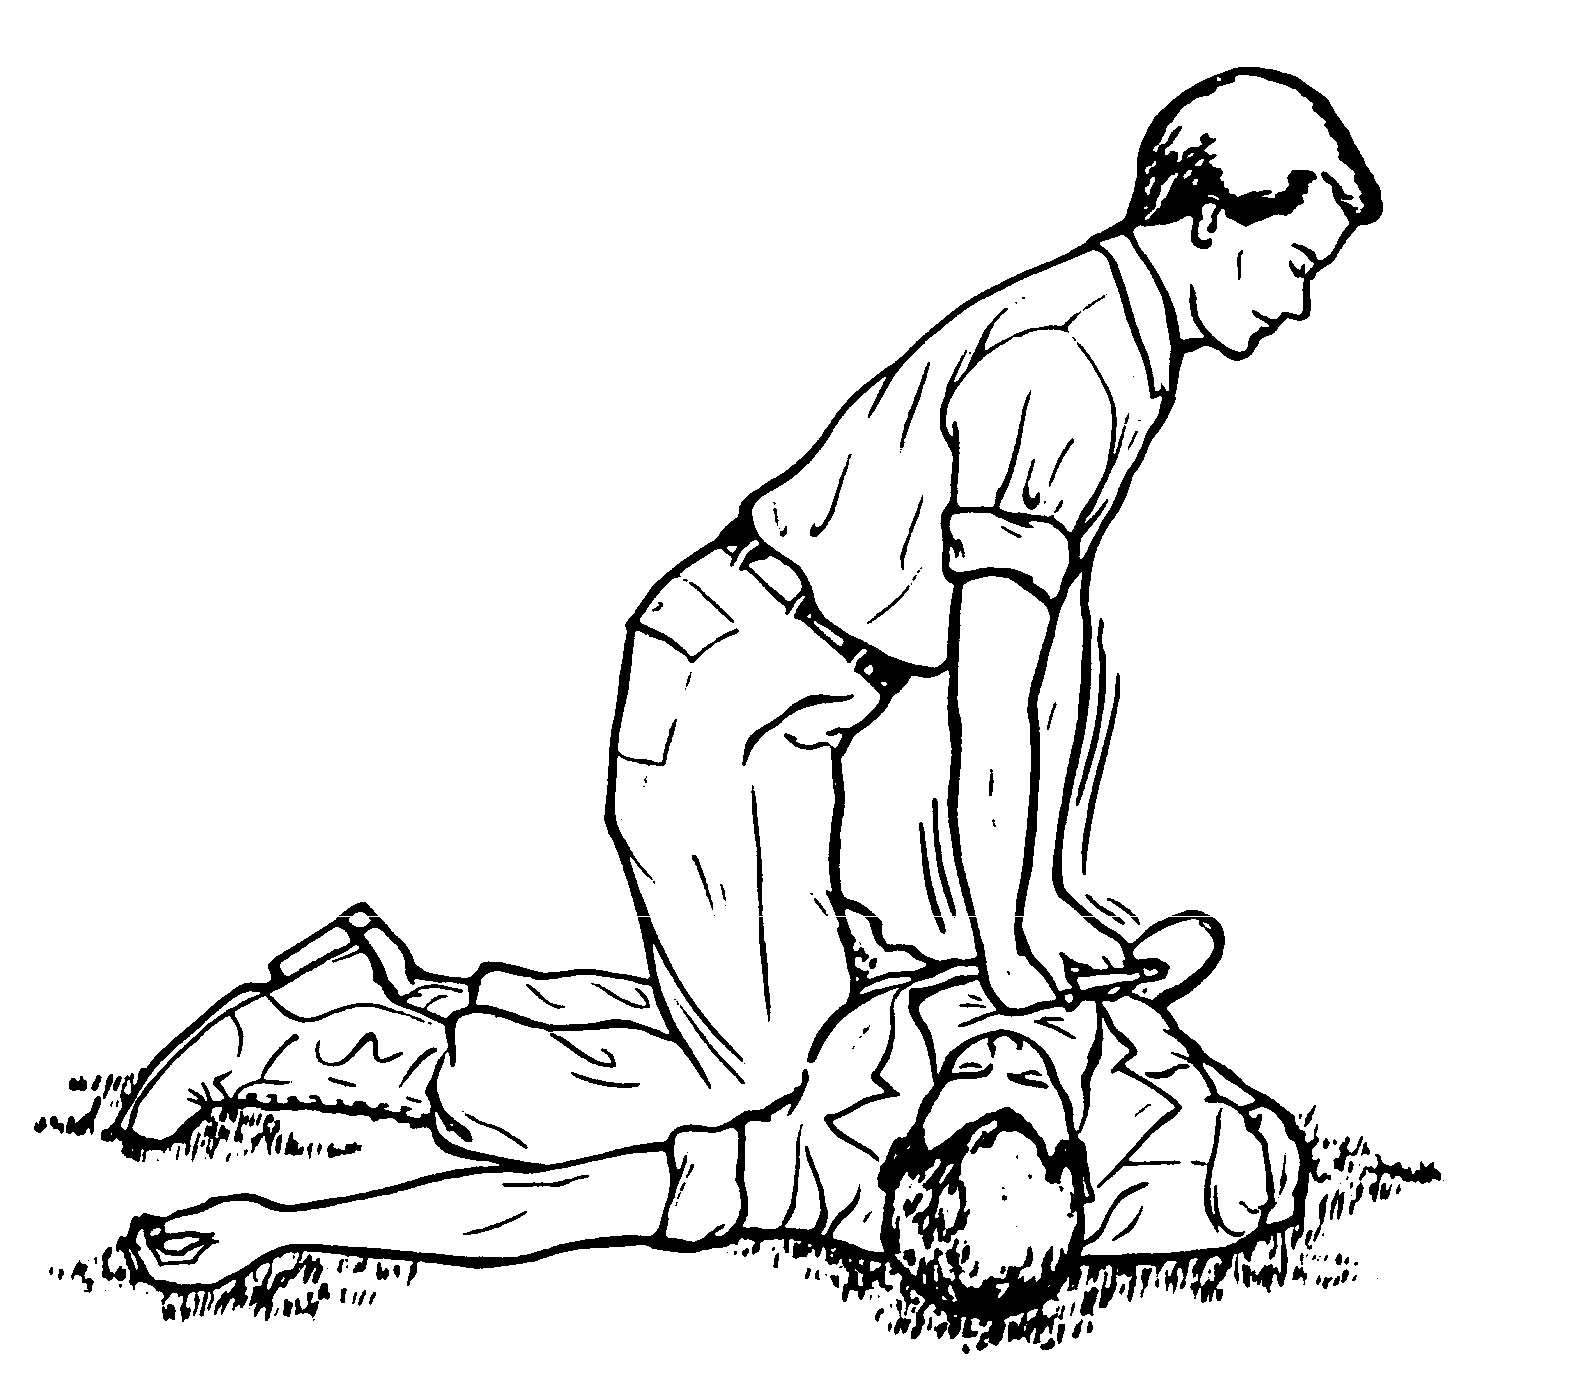 4 1 Administer Cardiopulmonary Resuscitation To An Adult